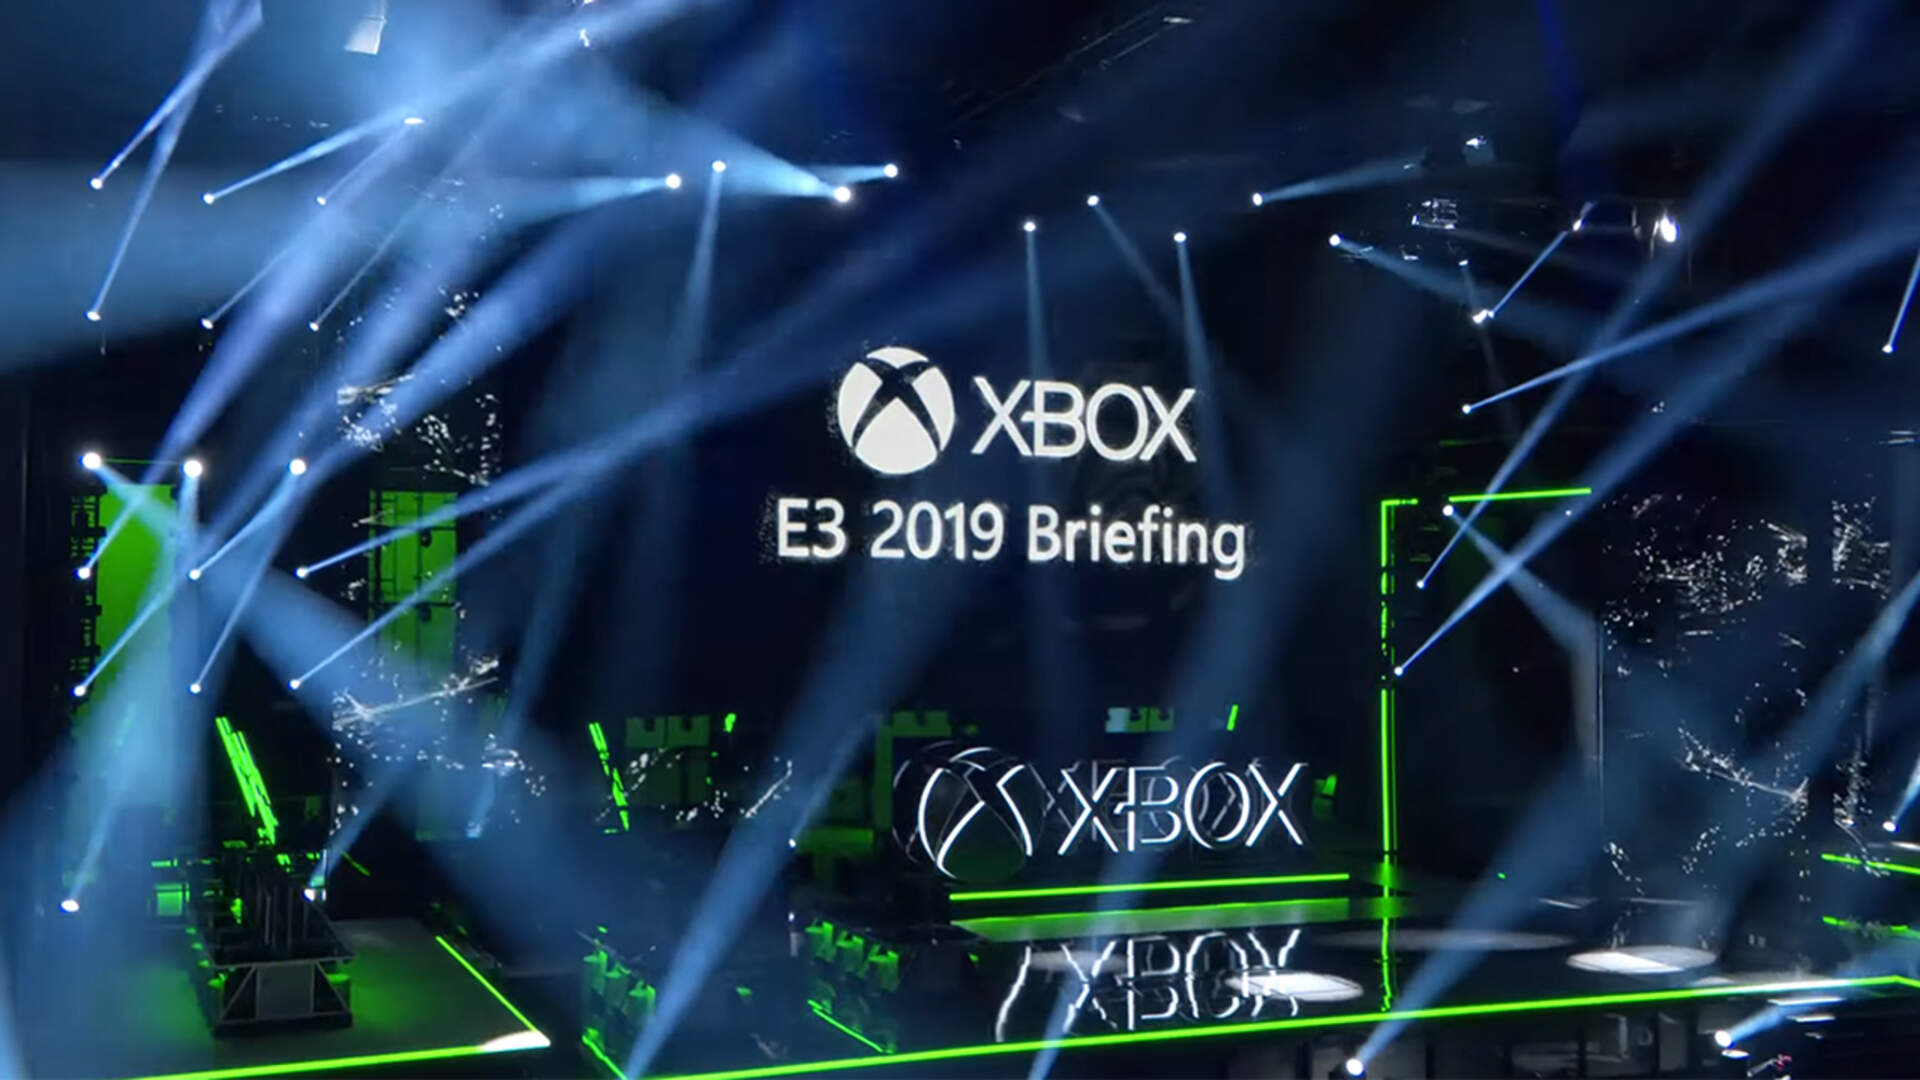 Microsoft's Dud of an E3 2019 Press Conference Makes Sony Look Smart for Skipping the Show